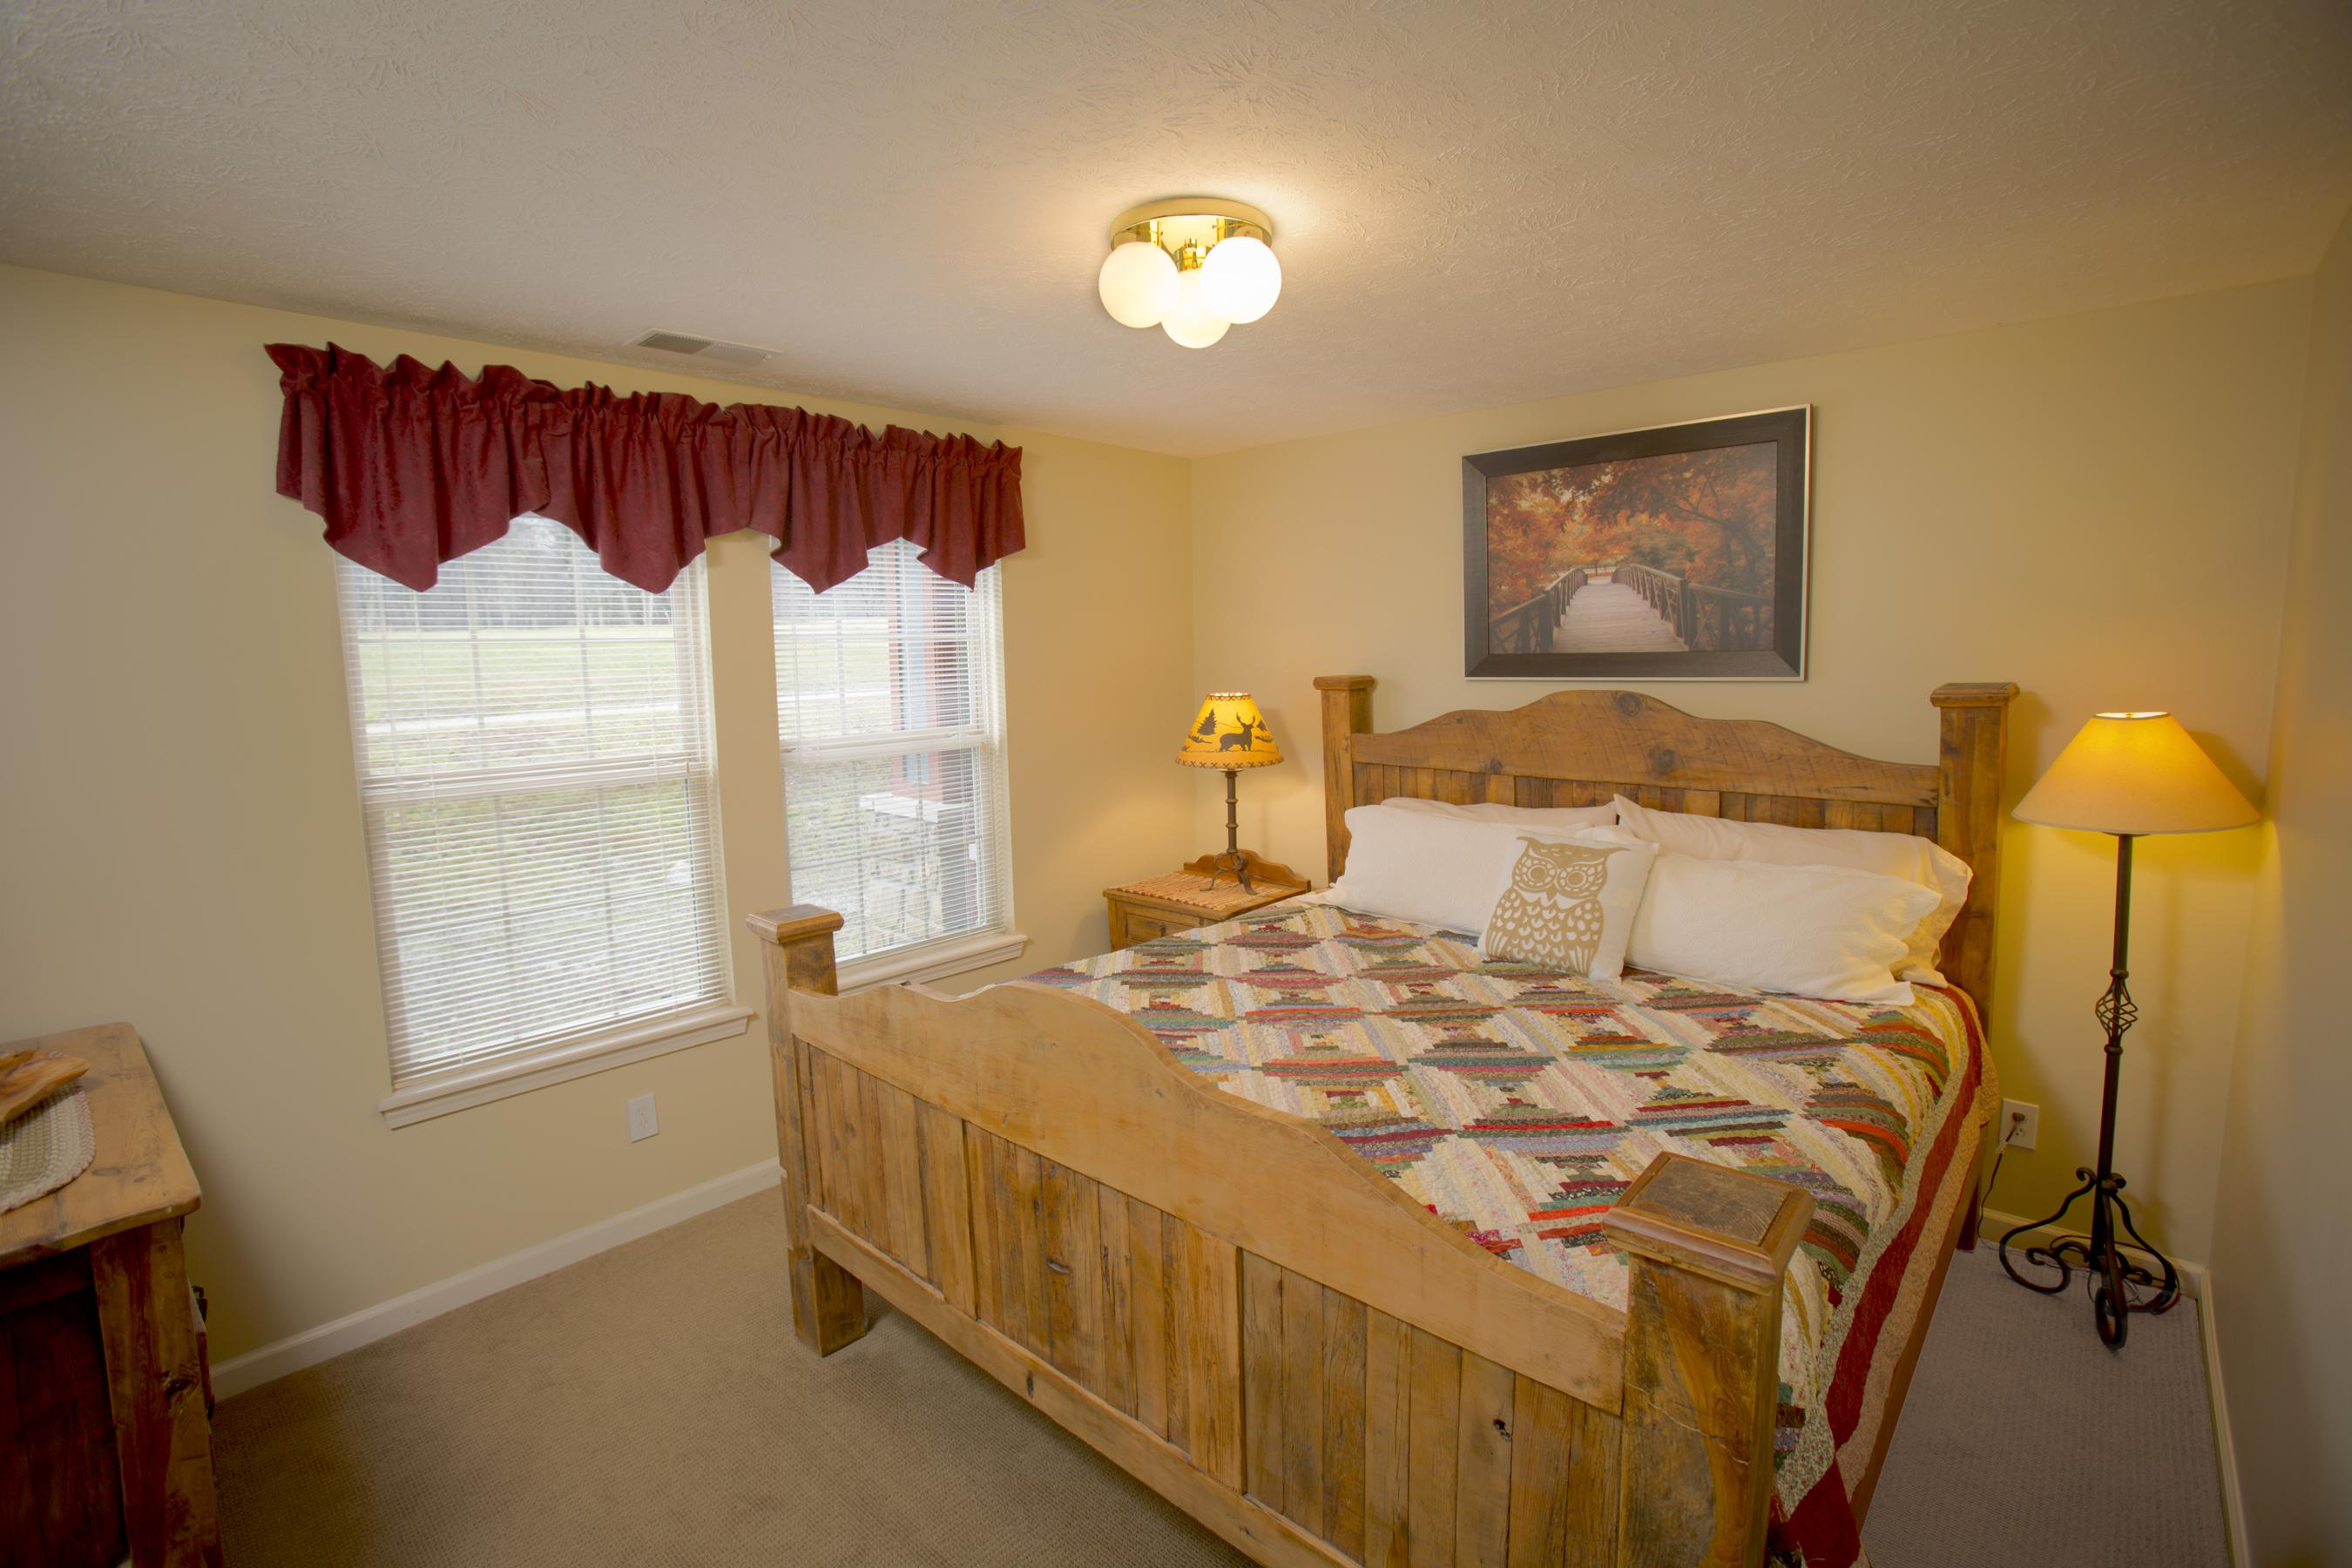 ... Click To Enlarge Image Salt Creek Lodge Bedroom 1 ...